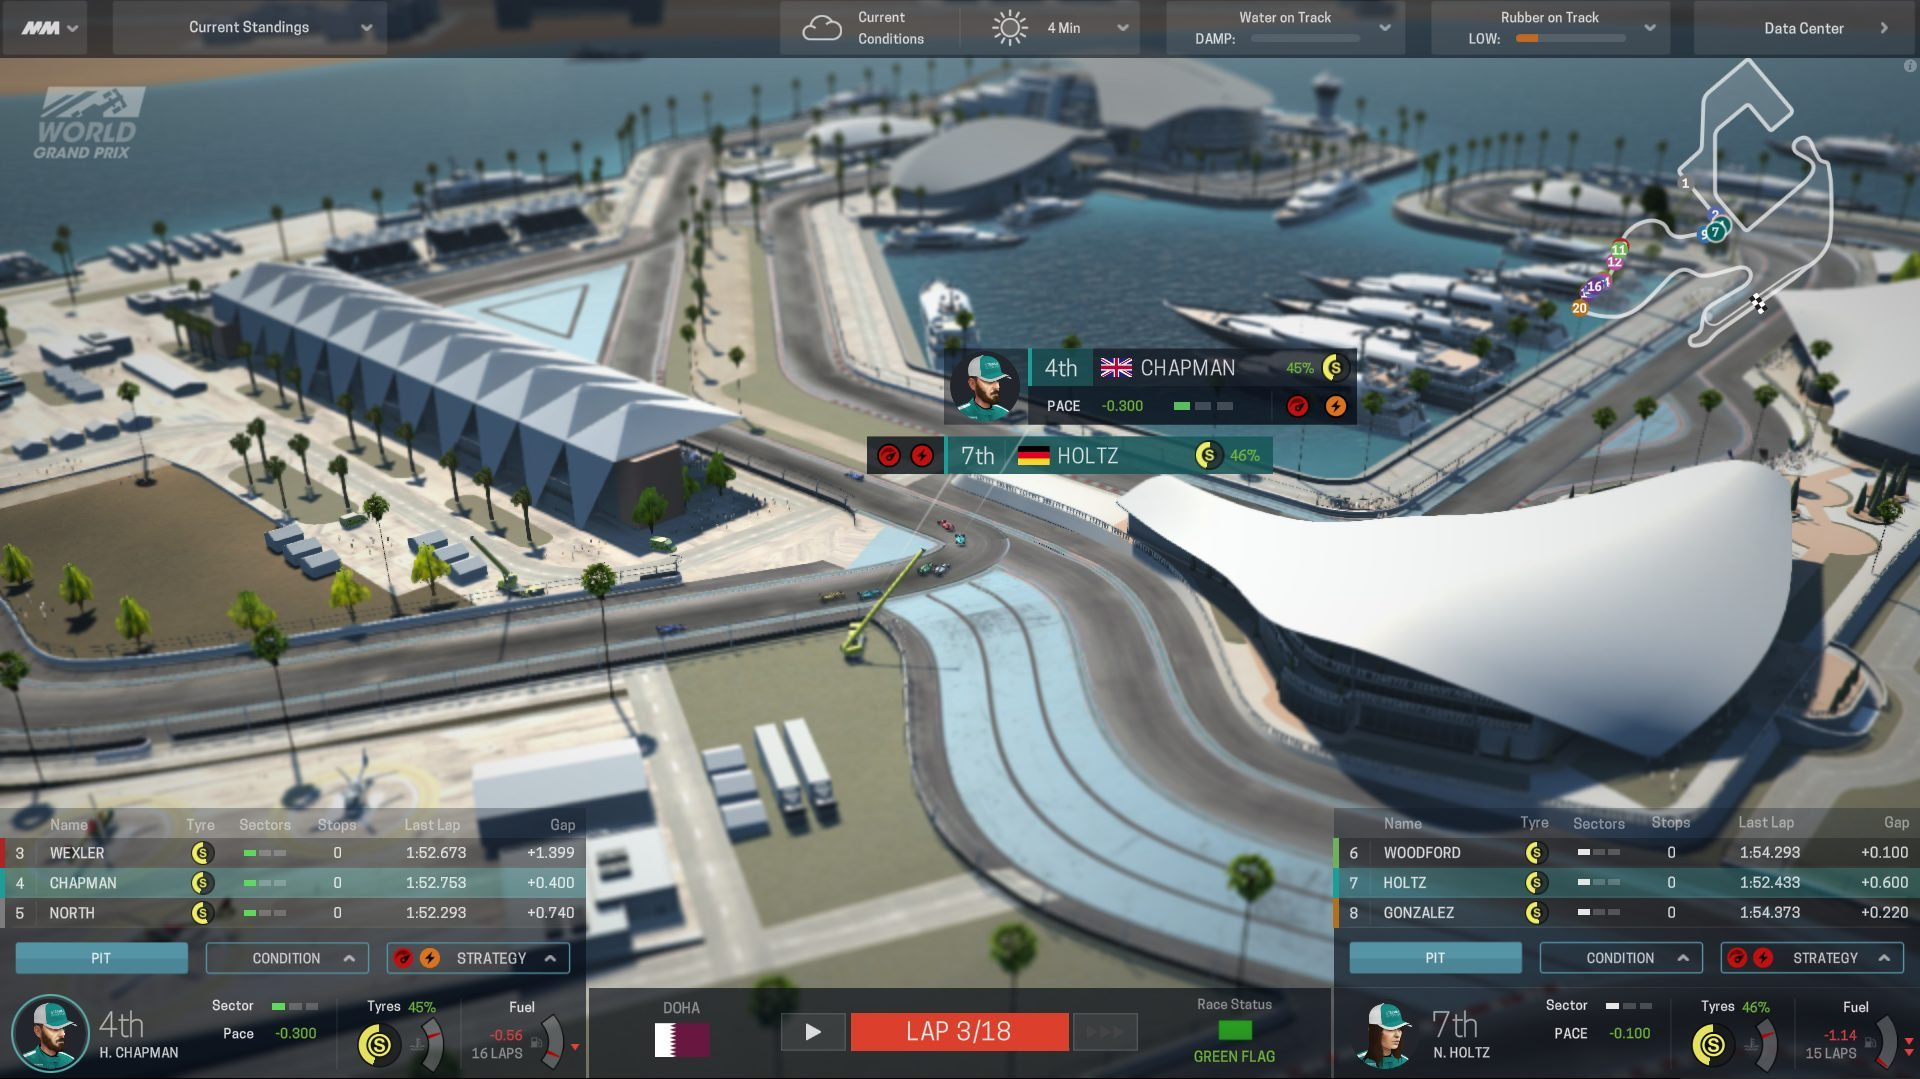 MOTORSPORT MANAGER Master the Tech Video Released by SEGA